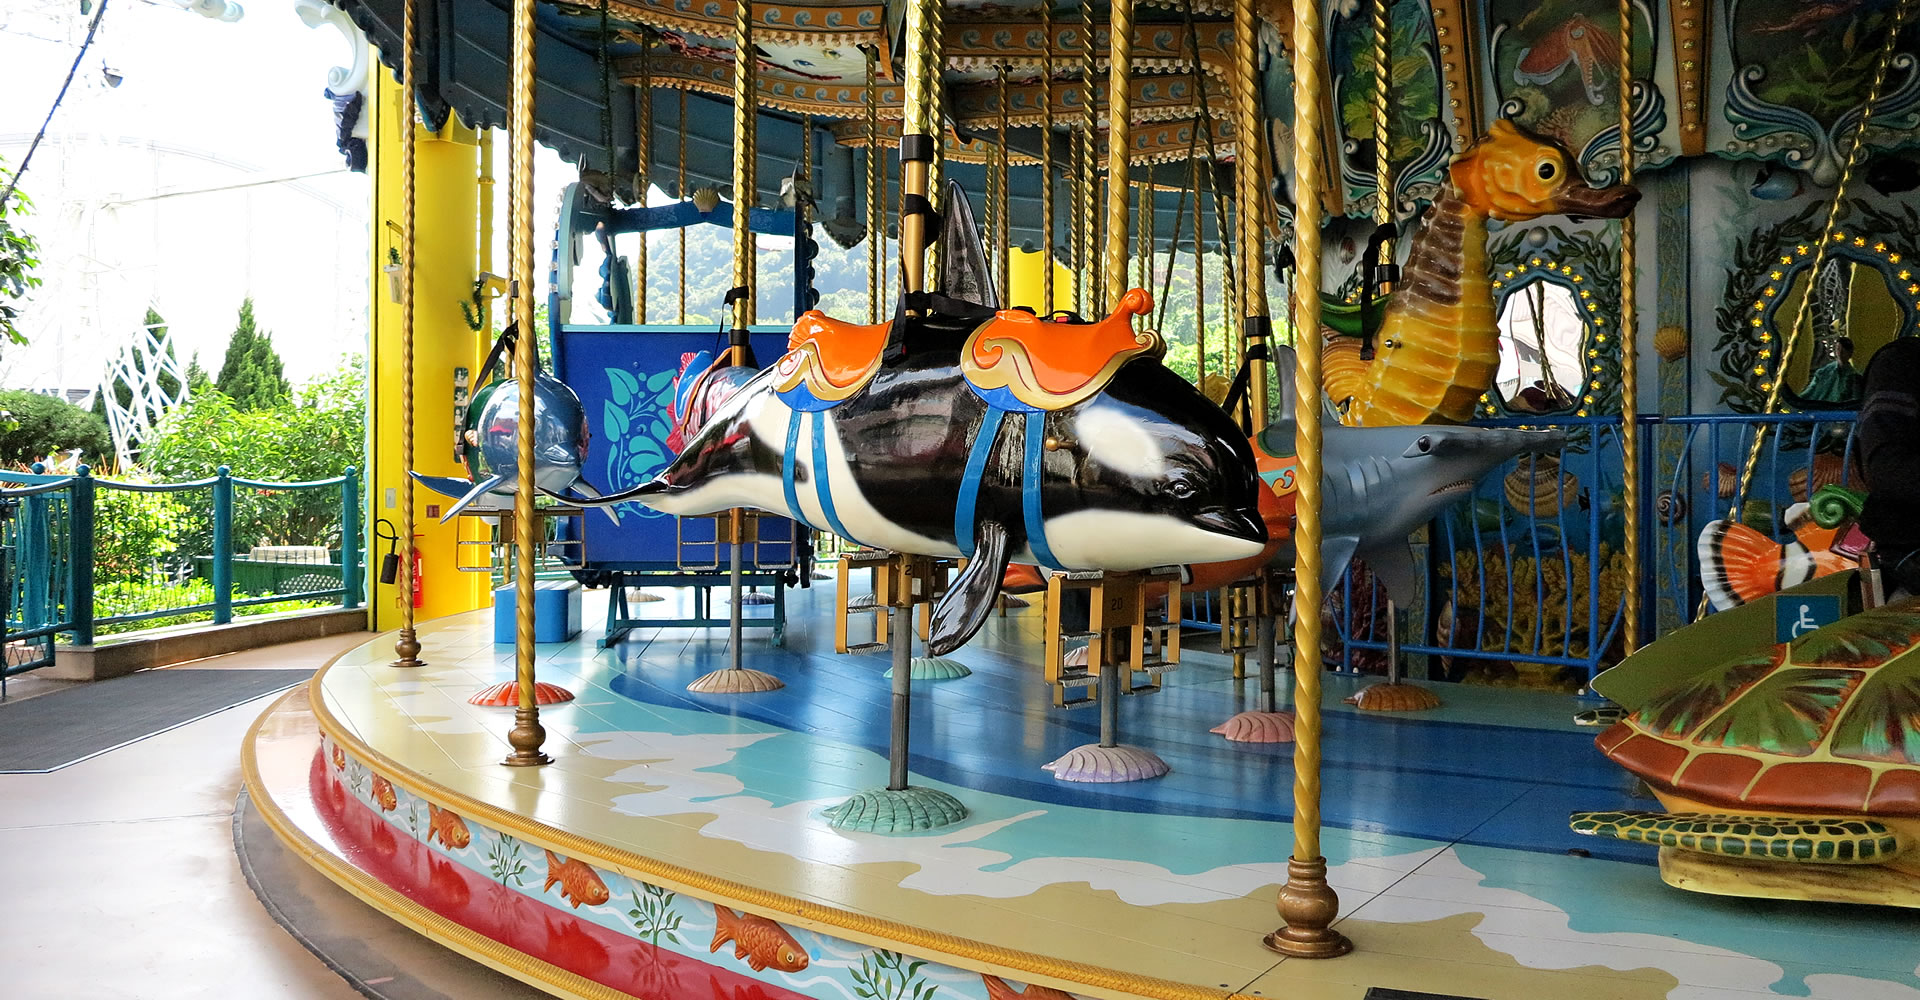 https://media.oceanpark.com.hk/files/s3fs-public/SeaLifeCarousel_02x.jpg